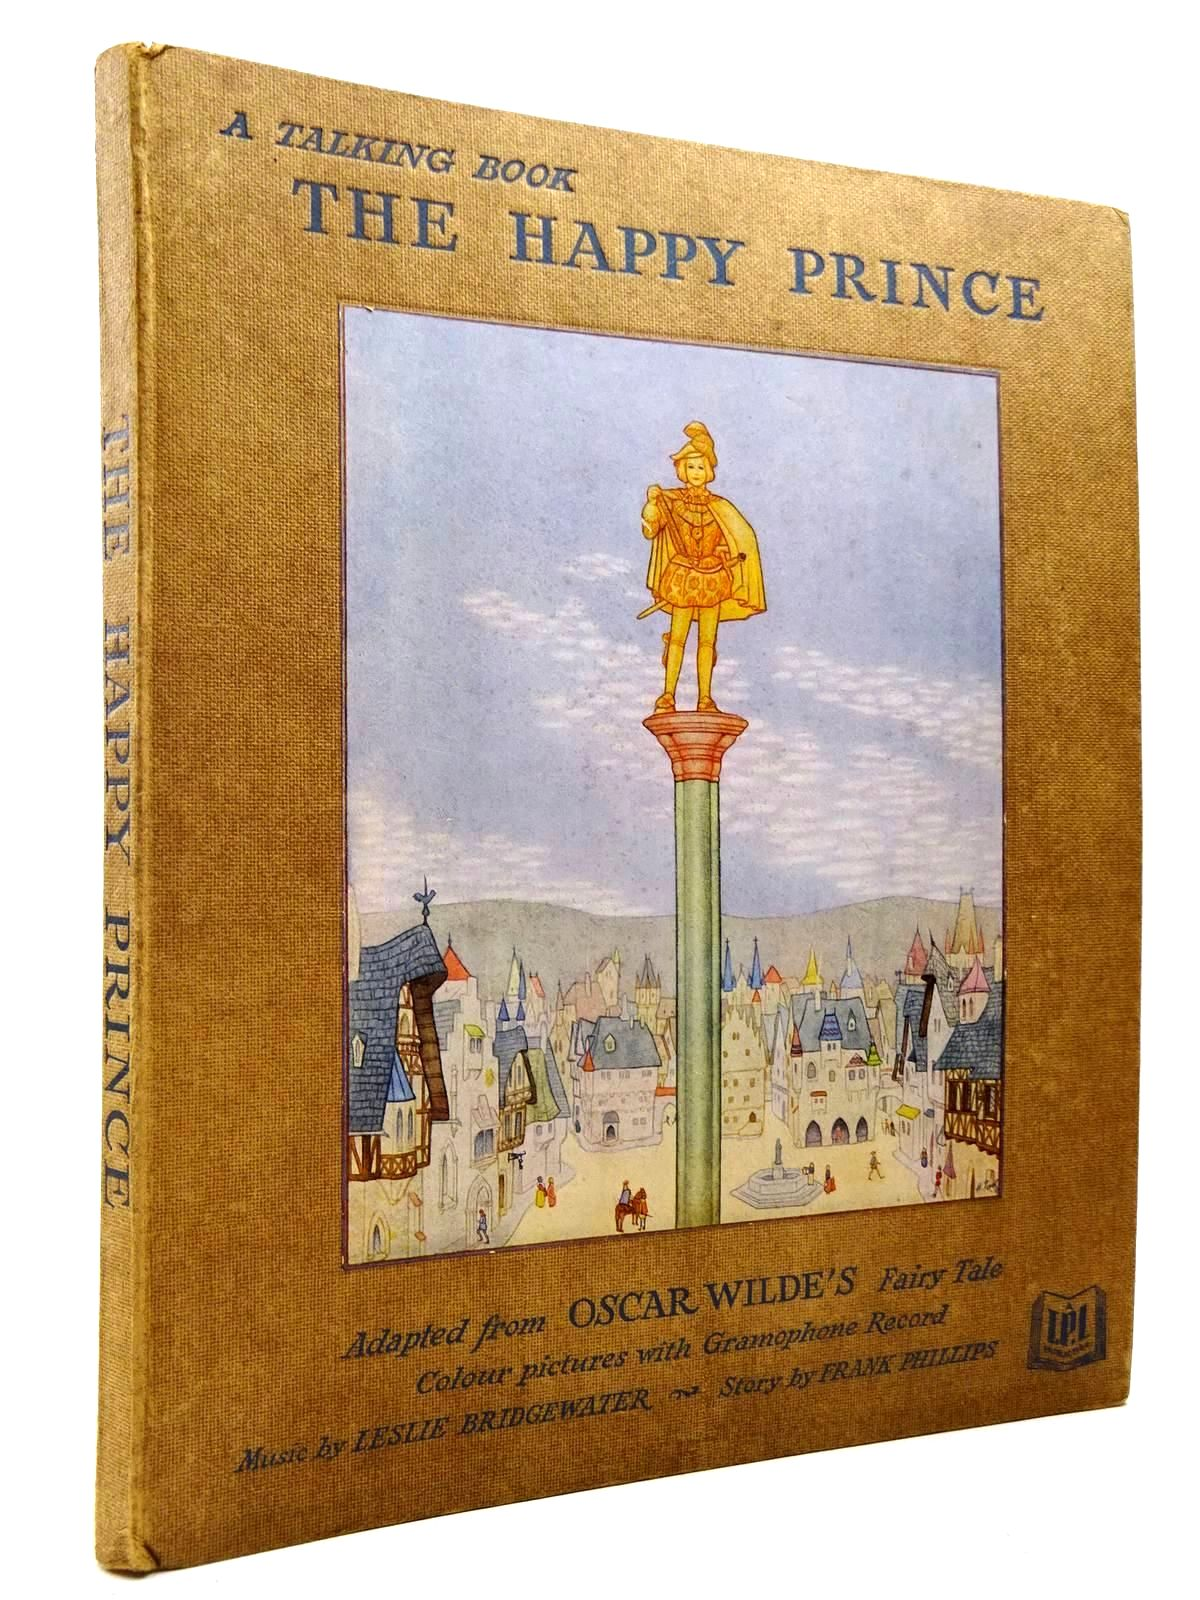 Photo of THE HAPPY PRINCE A TALKING BOOK written by Wilde, Oscar Lake, Minnie illustrated by Paul, H. published by Horace Marshall & Son Ltd. (STOCK CODE: 2130567)  for sale by Stella & Rose's Books